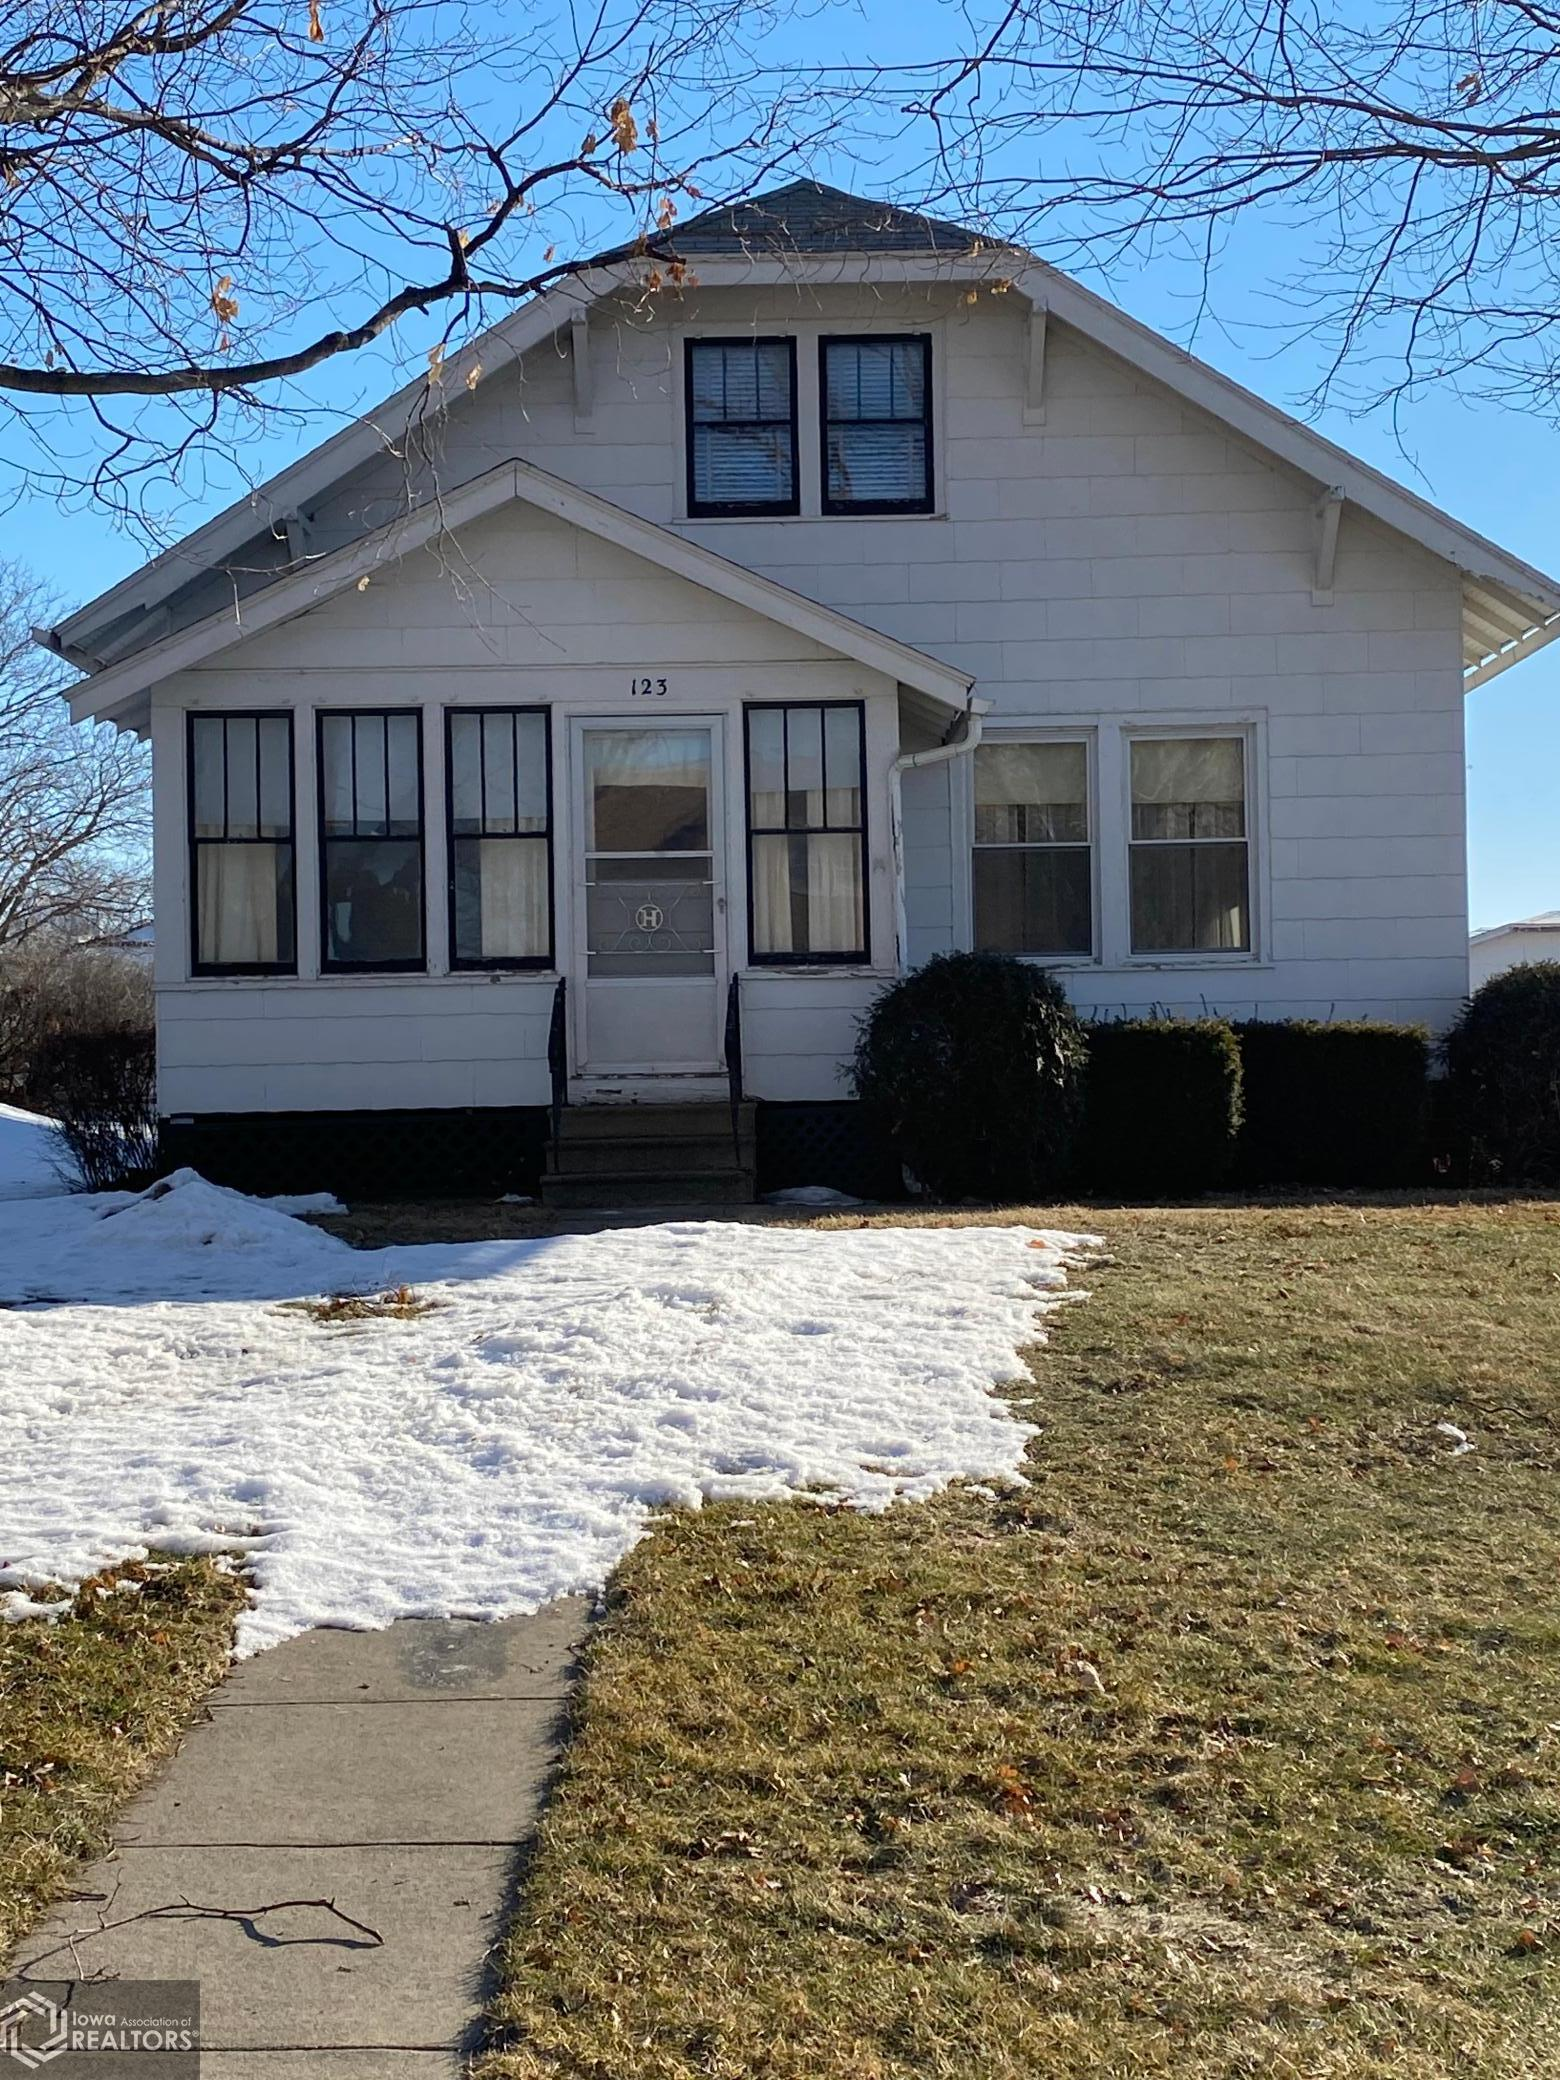 123 High, Brooklyn, Iowa 52211-0393, 3 Bedrooms Bedrooms, ,1 BathroomBathrooms,Single Family,For Sale,High,5719089